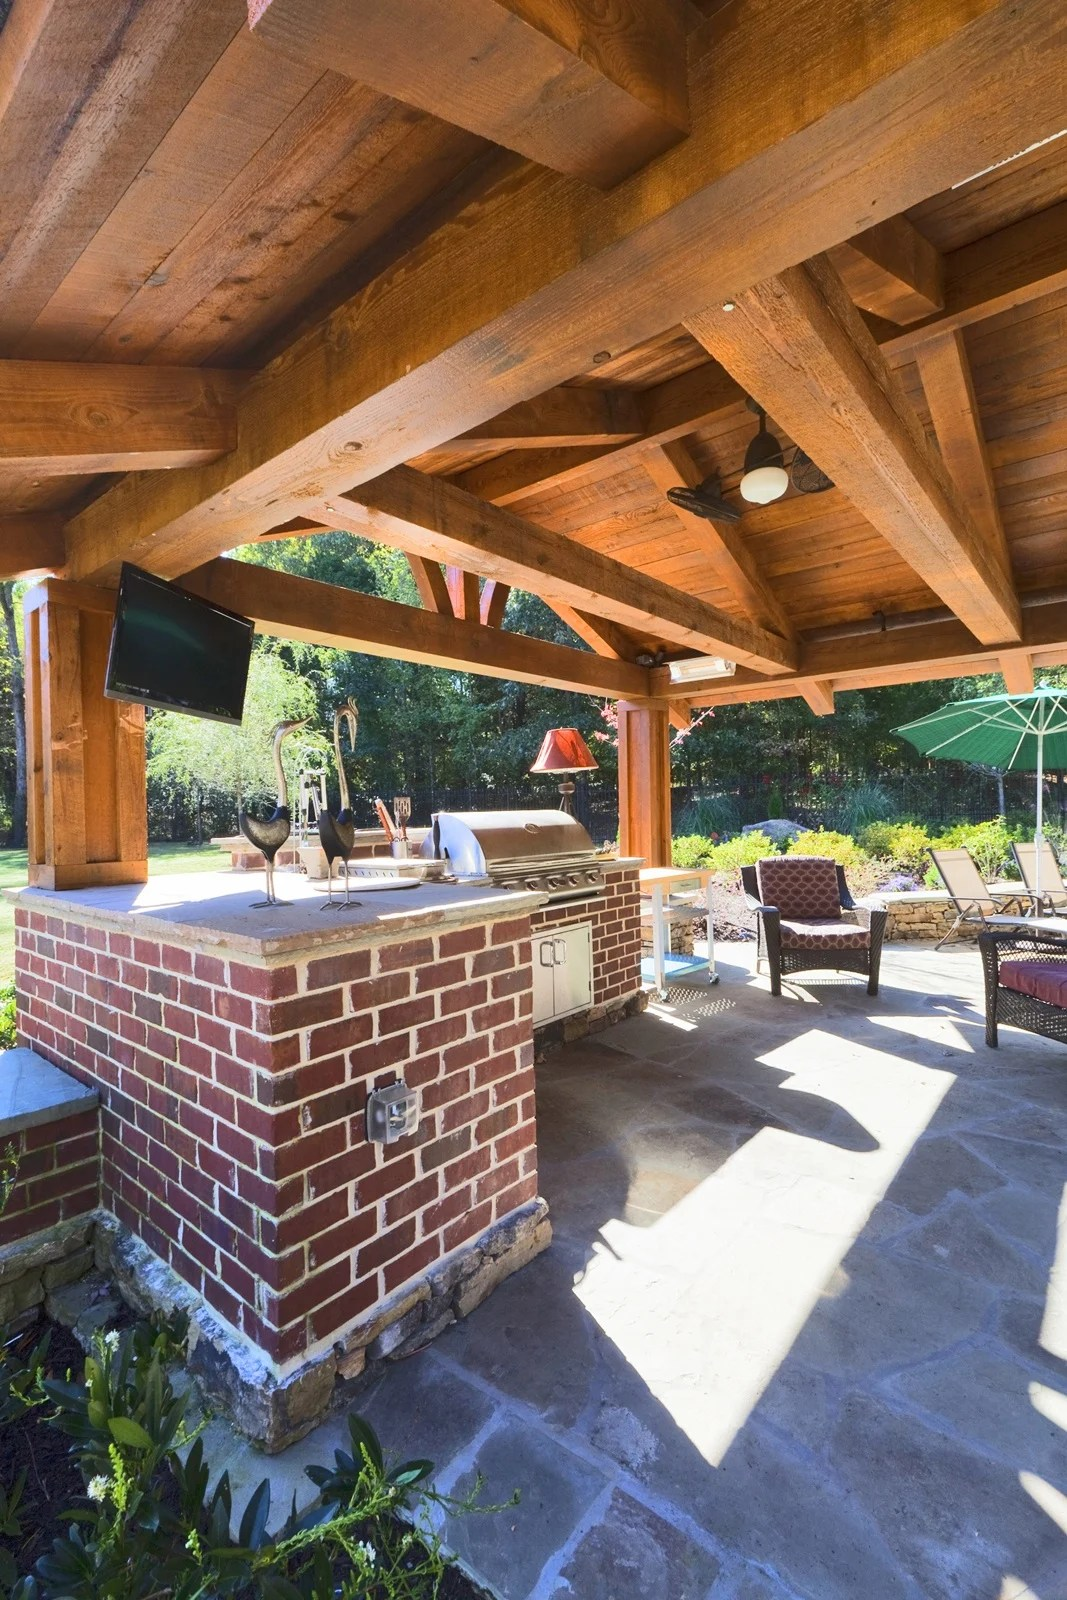 design and build an outdoor kitchen